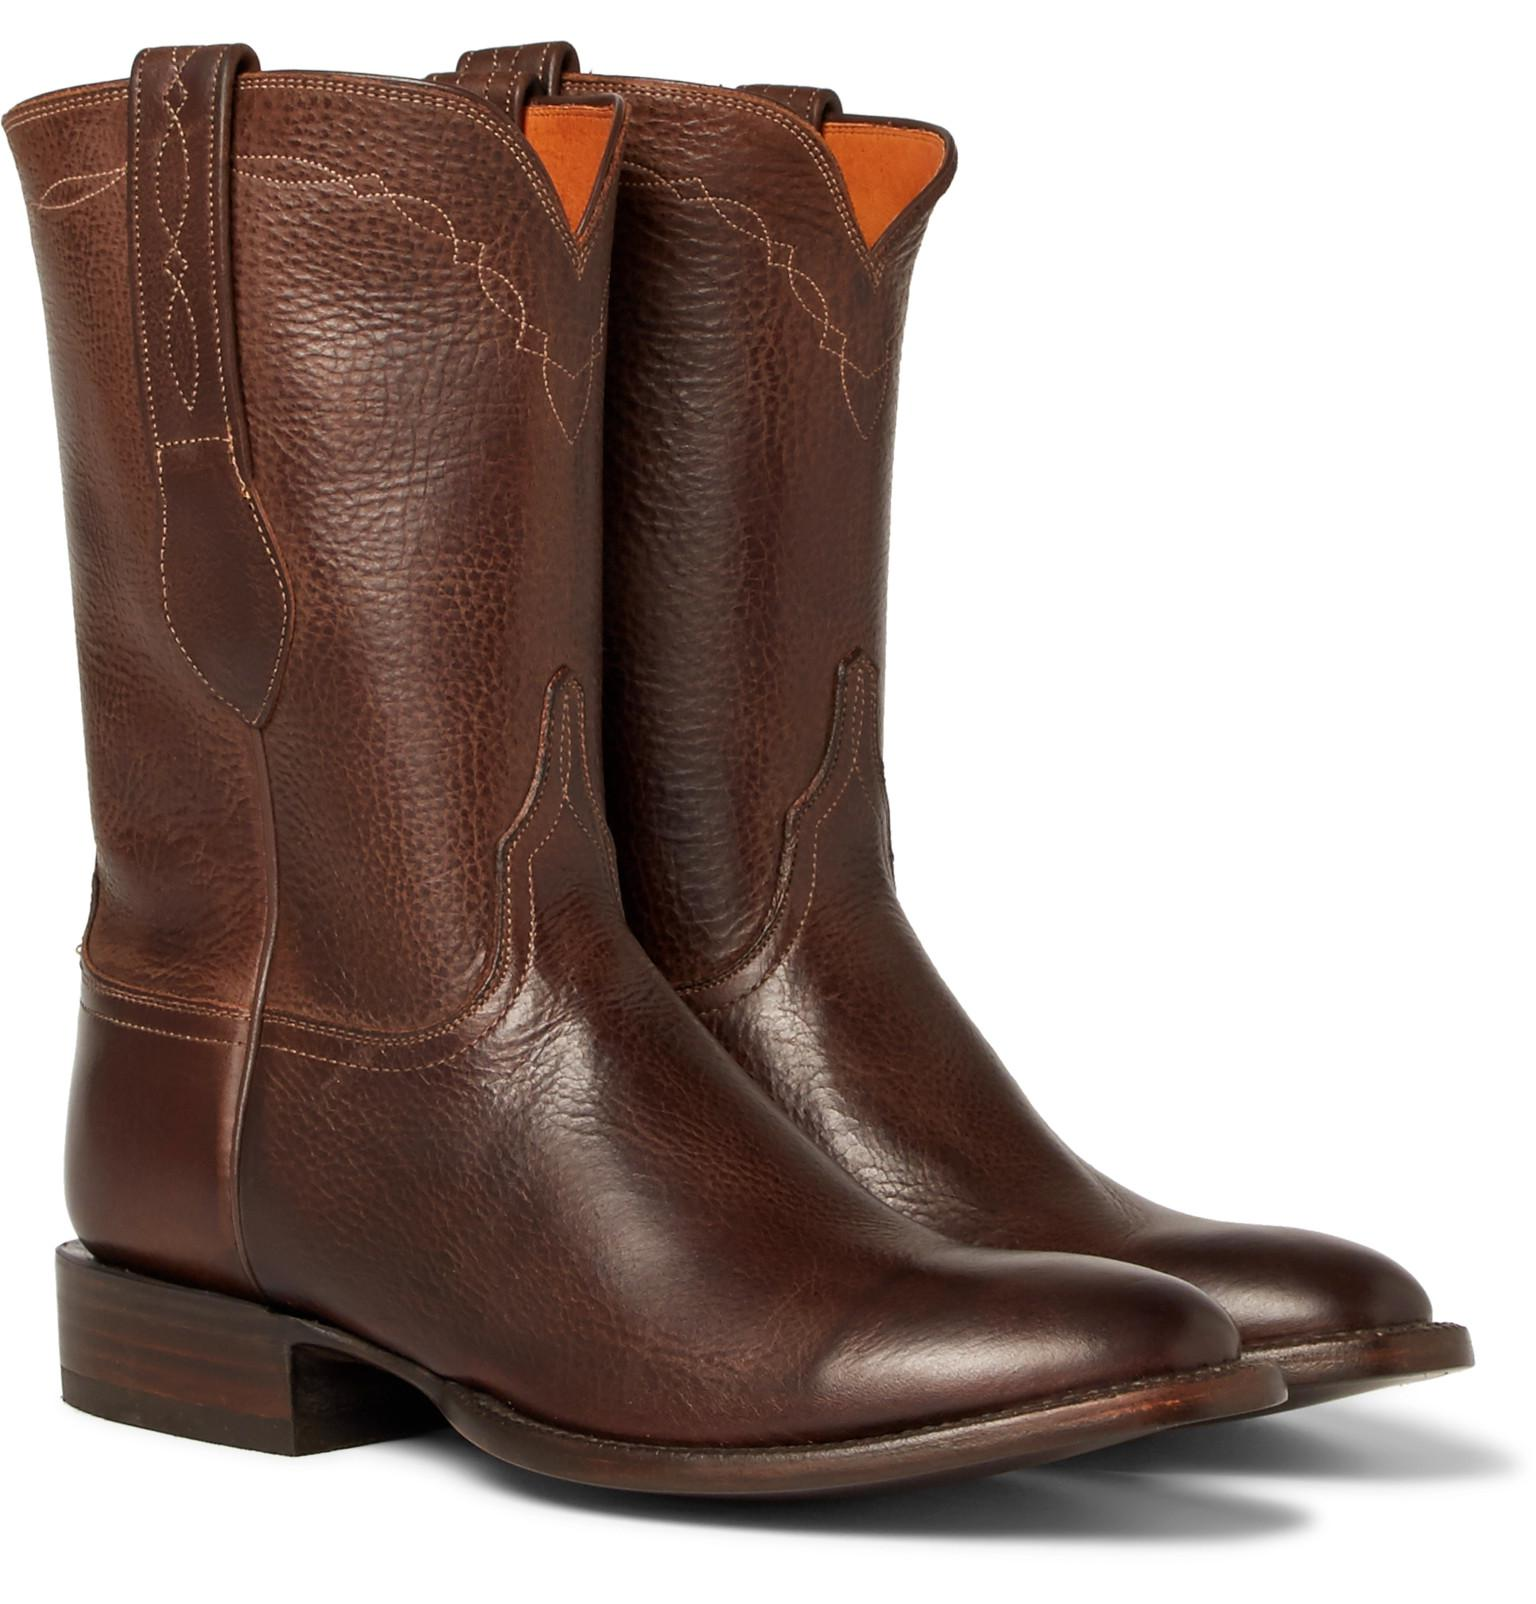 + Luchesse Statesman Embroidered Burnished-leather Boots - BrownKingsman qdUNBl4g